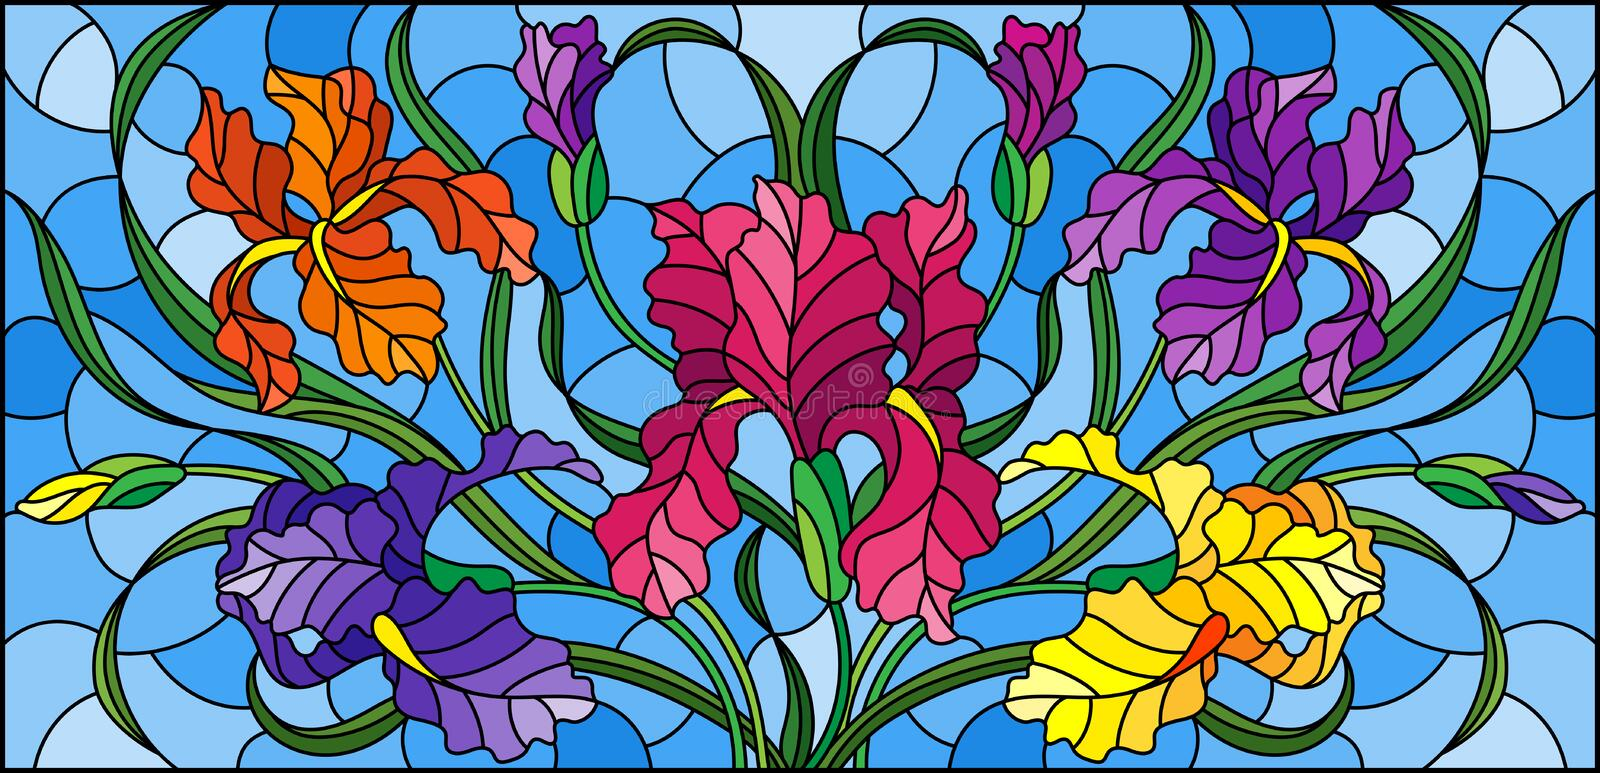 Stained glass illustration with  purple bouquet of irises, flowers, buds and leaves on blue background. Illustration in stained glass style with purple bouquet vector illustration